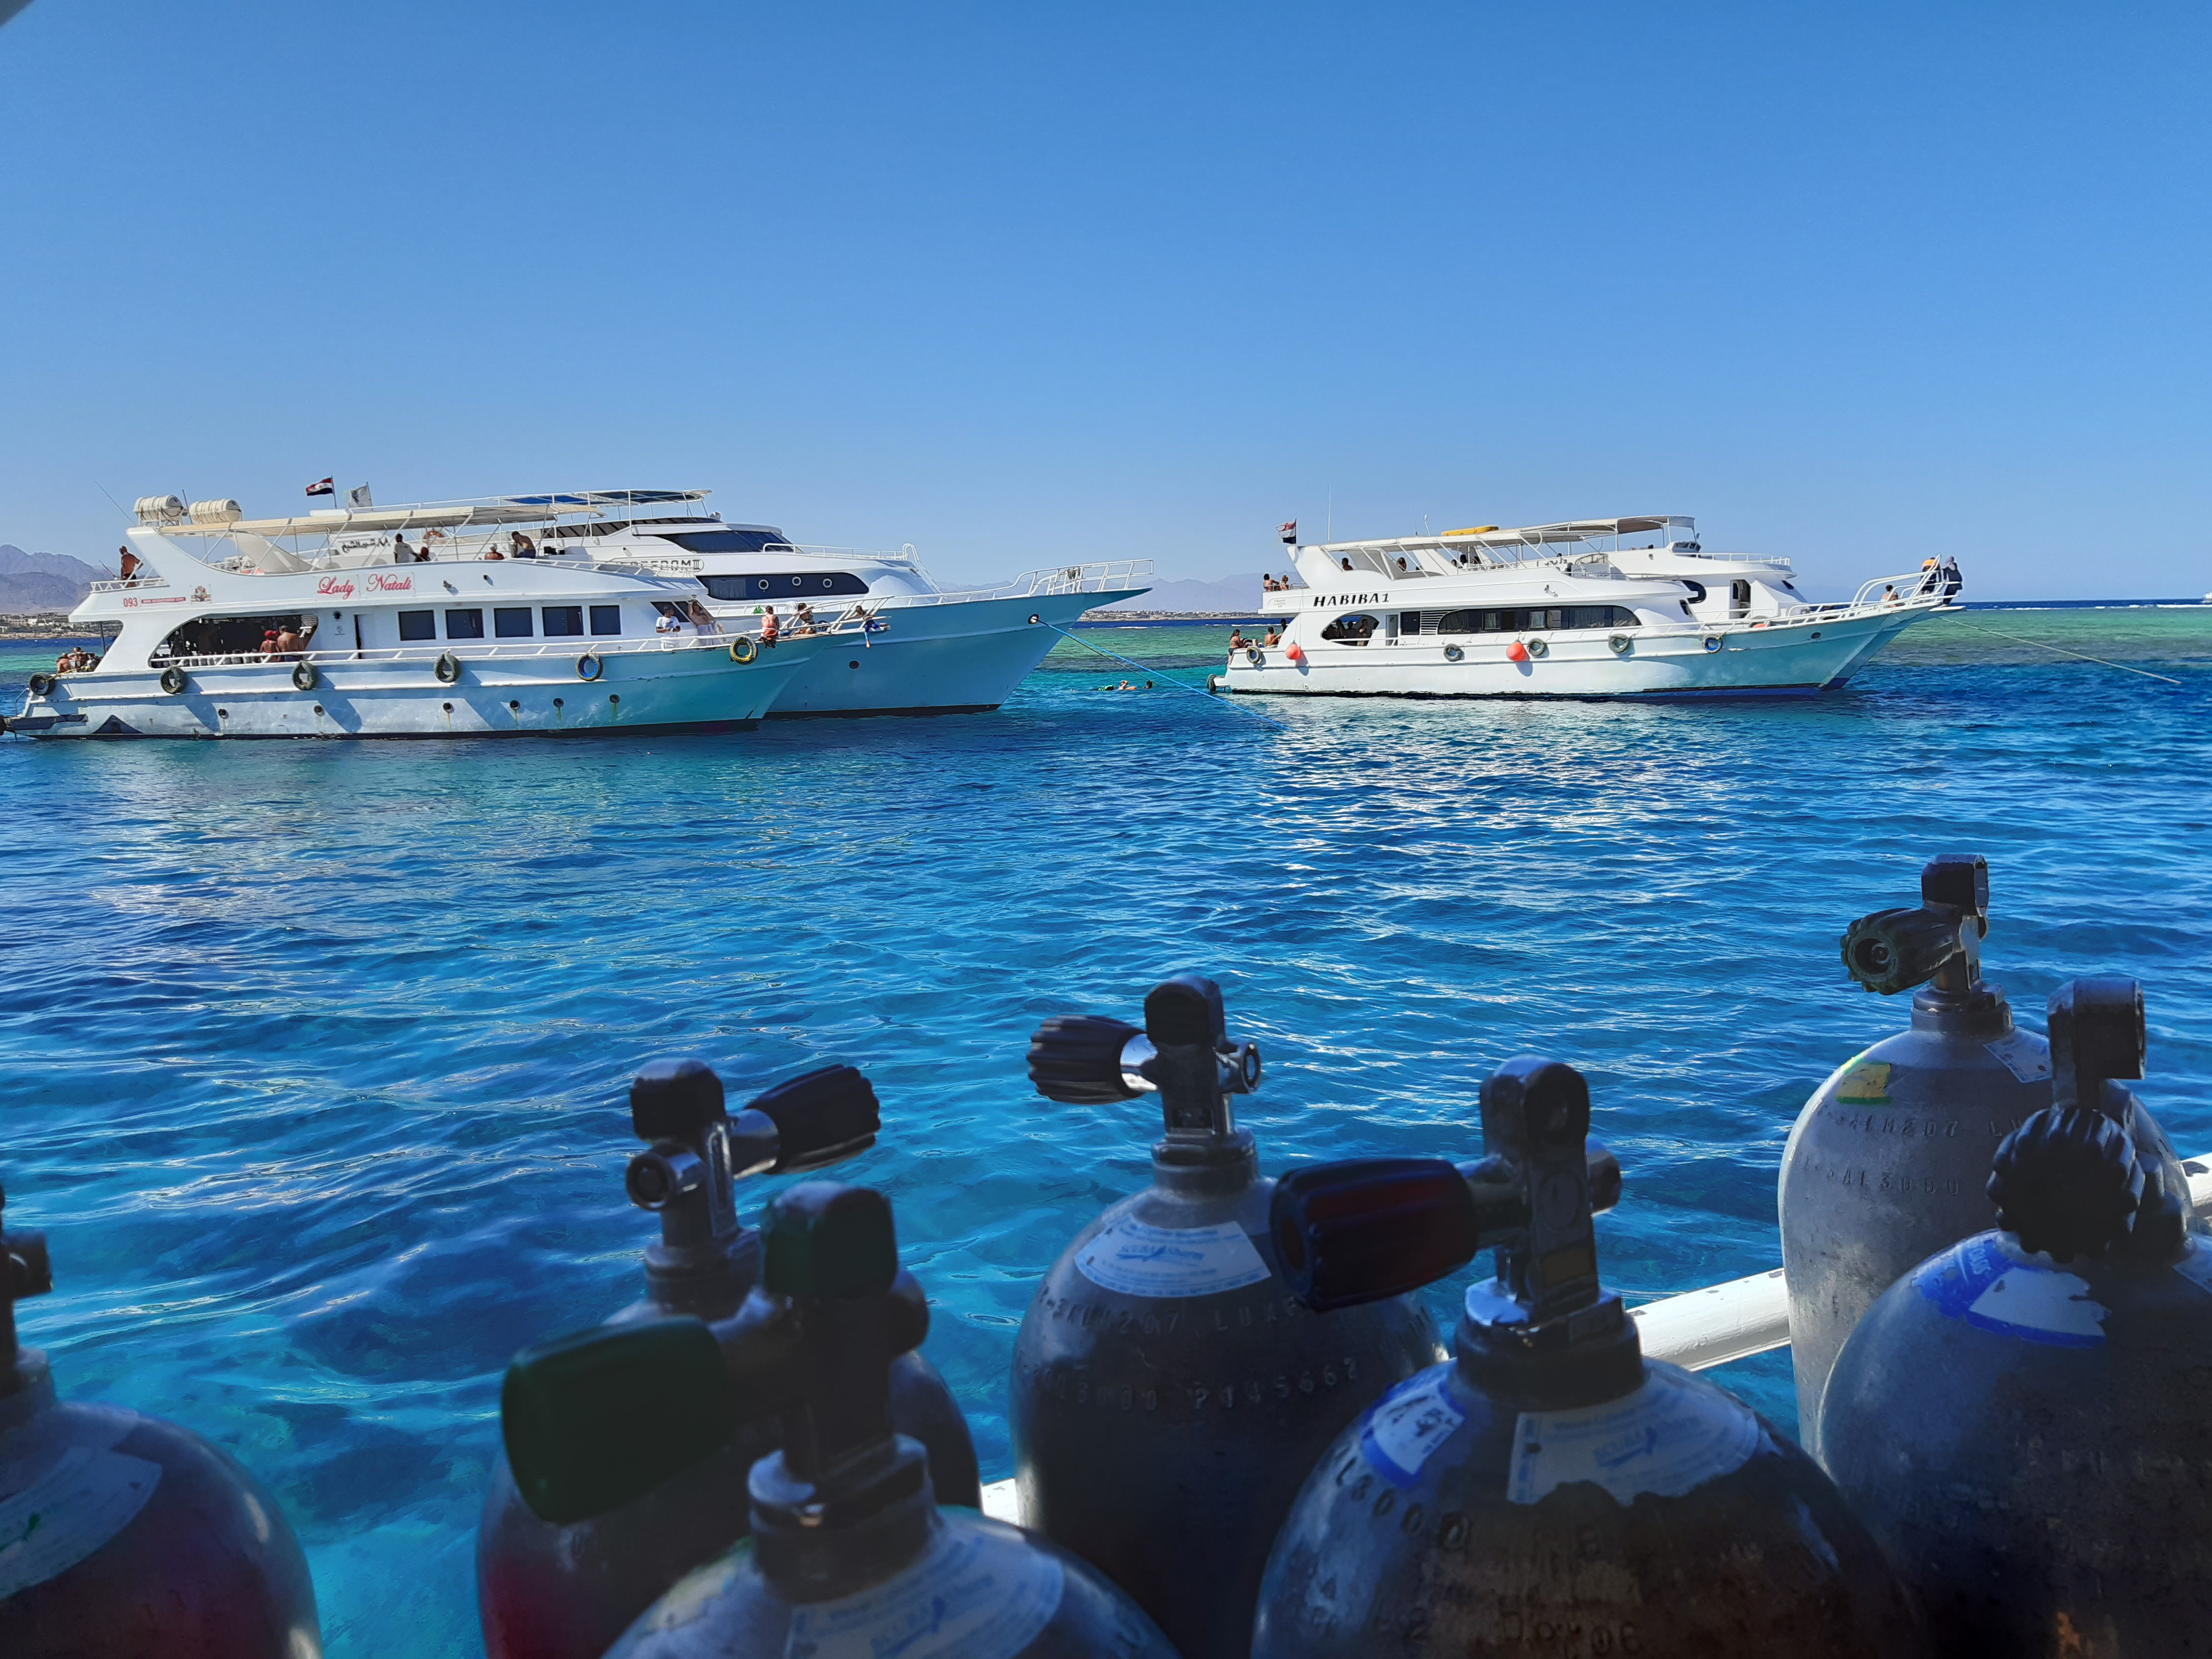 Egypt Implements Environmental Standards To Protect Its Coral Reefs